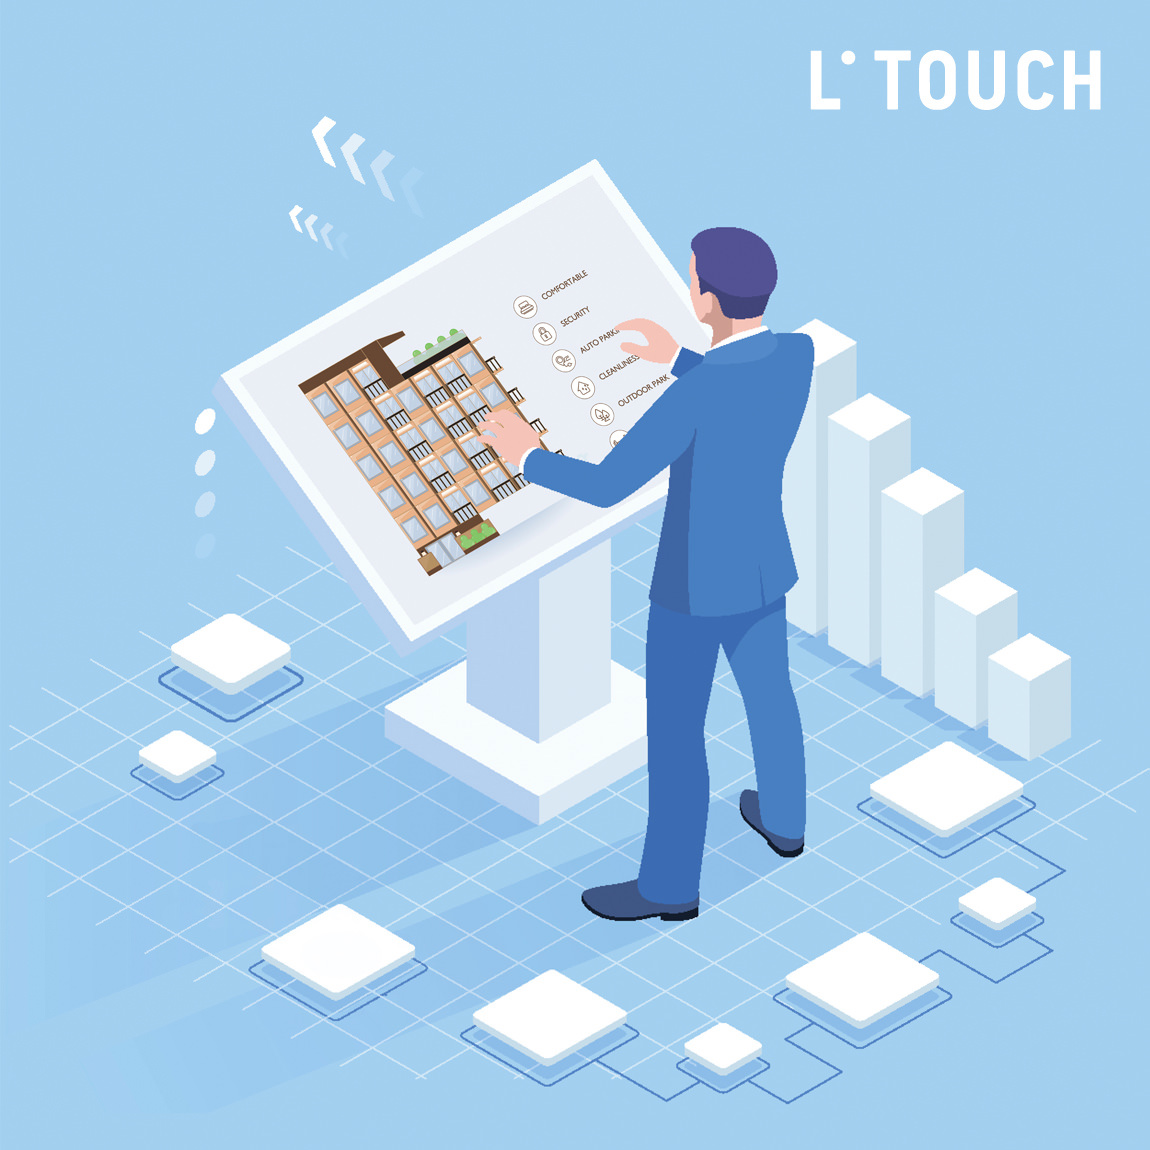 Lunas studio presents real estate software for touchscreen displays and video walls at PropTech Europe 2019